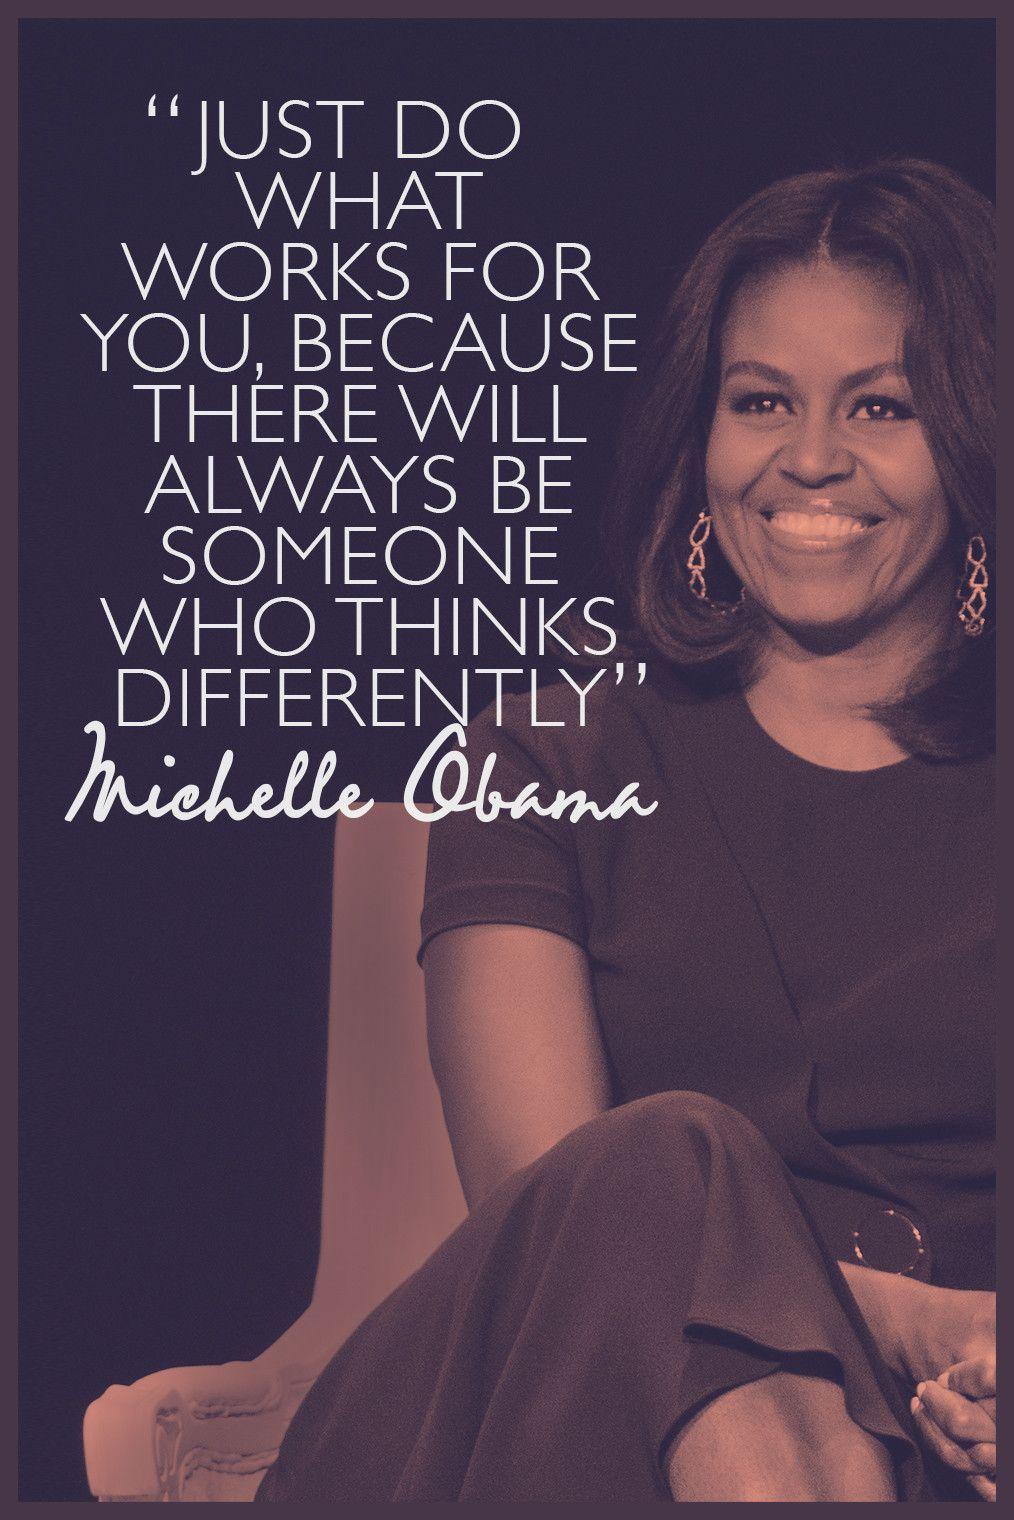 Michelle Obama Quotes Fair Just Do What Works For You Because There Will Always Be Someone Who